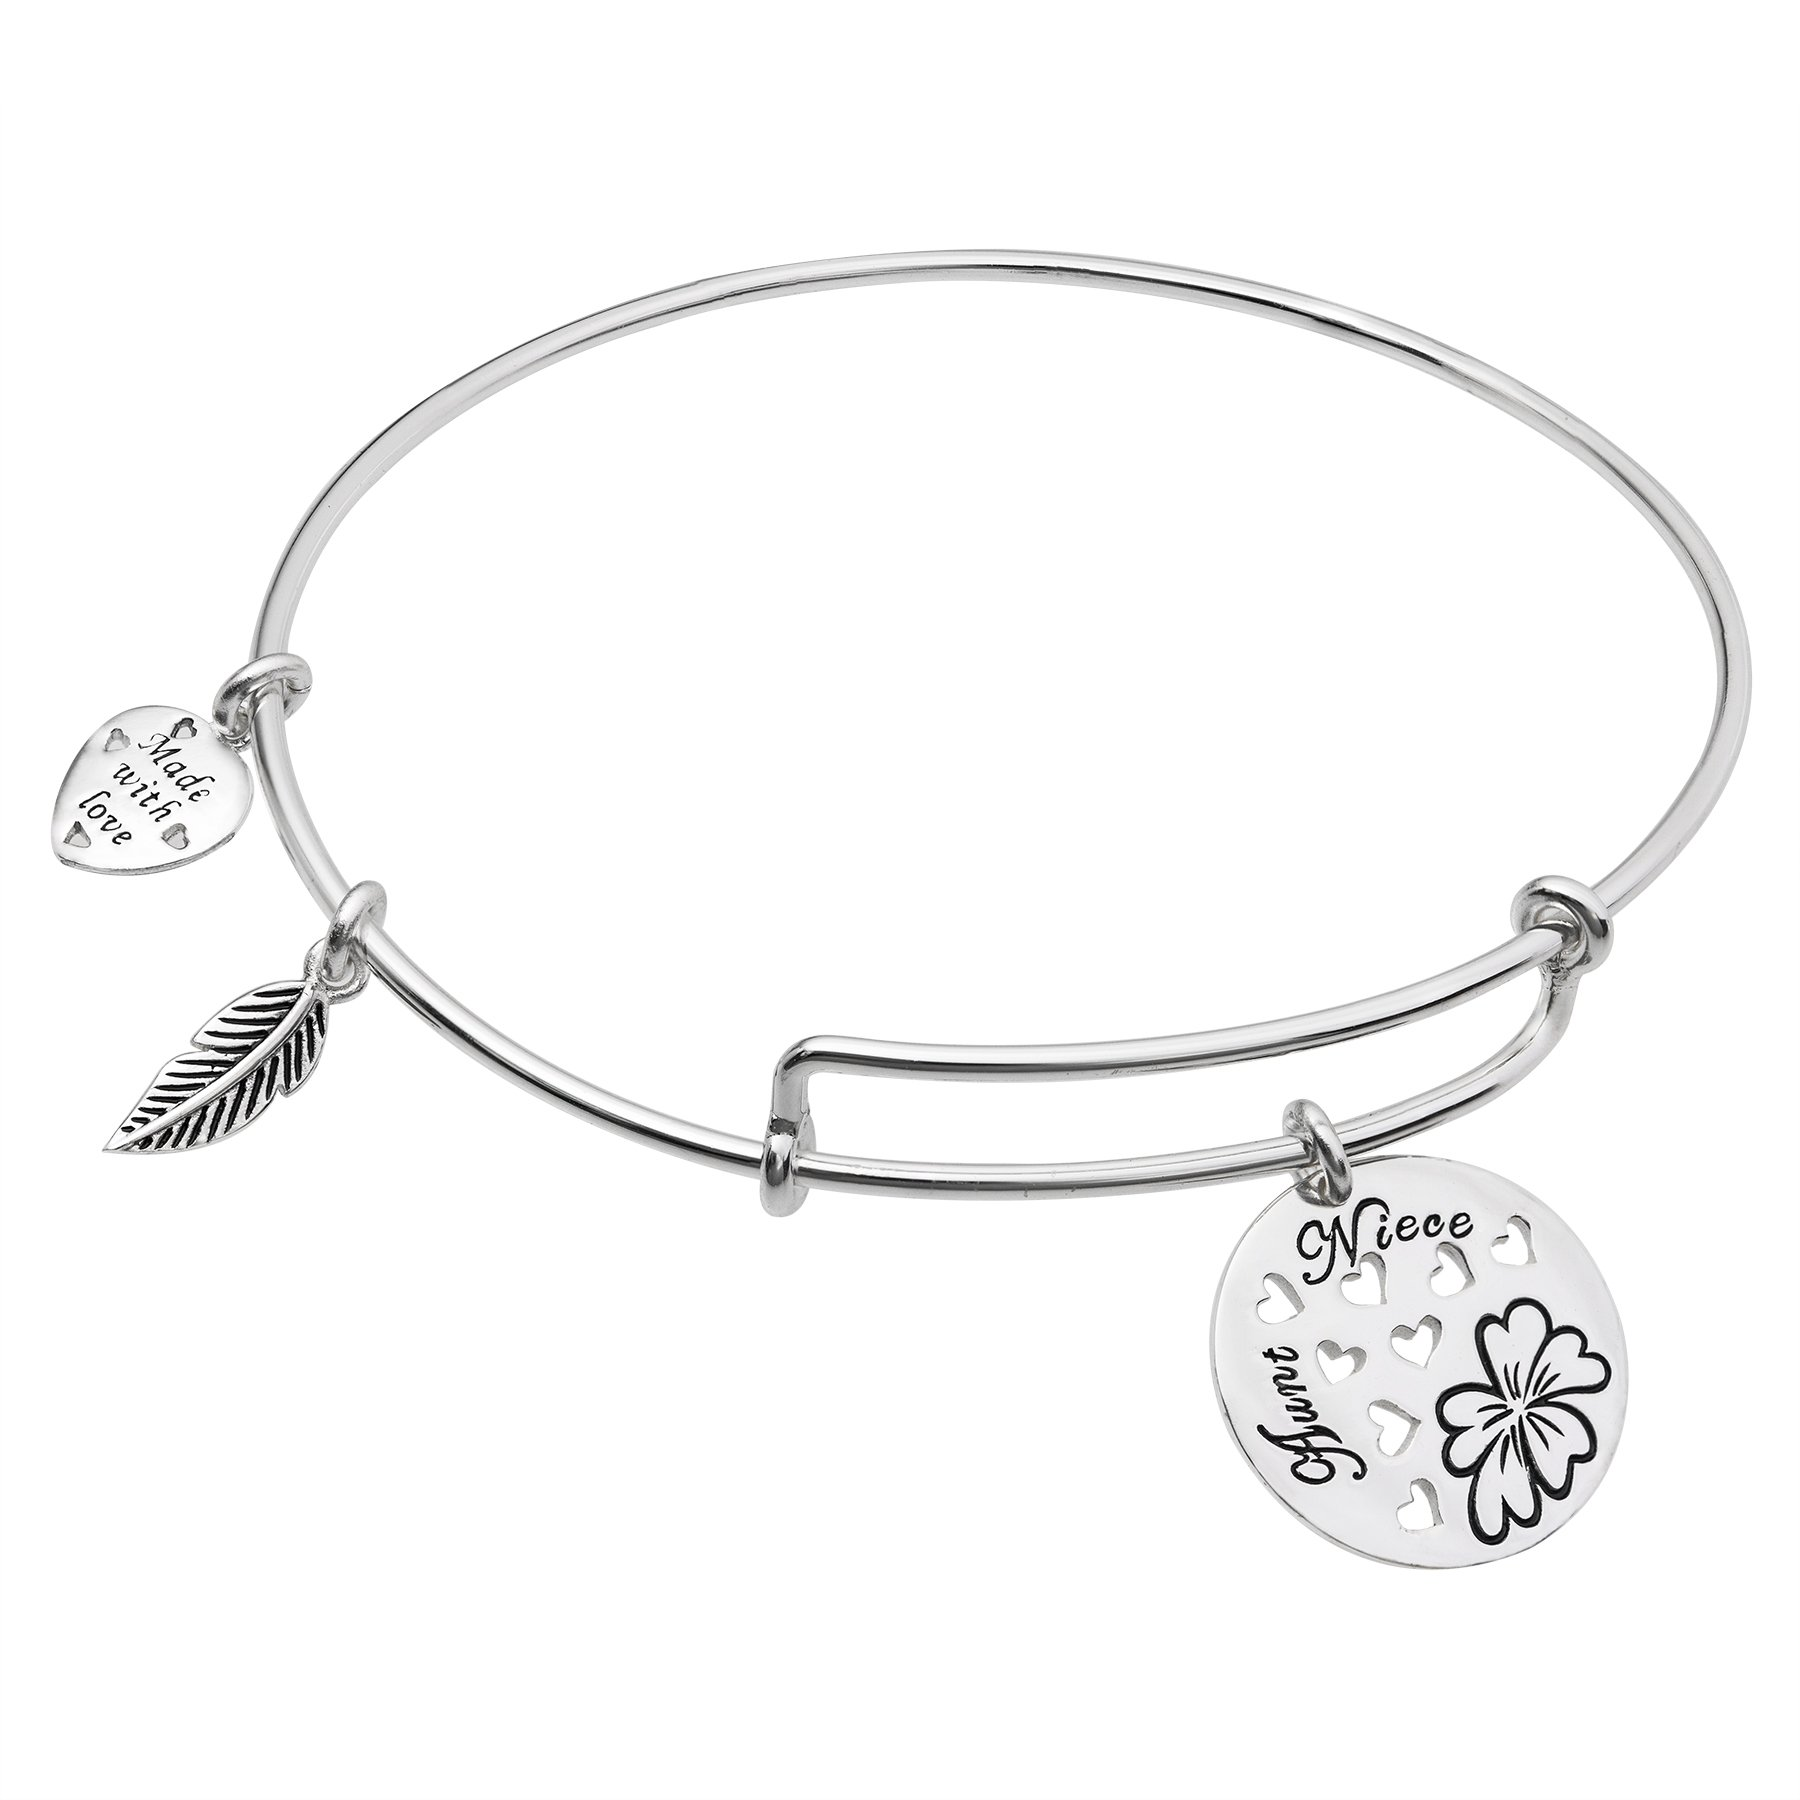 Sterling Silver Aunt Niece Heart Family Dangle Charm Expandable Bangle Bracelet by Qina C